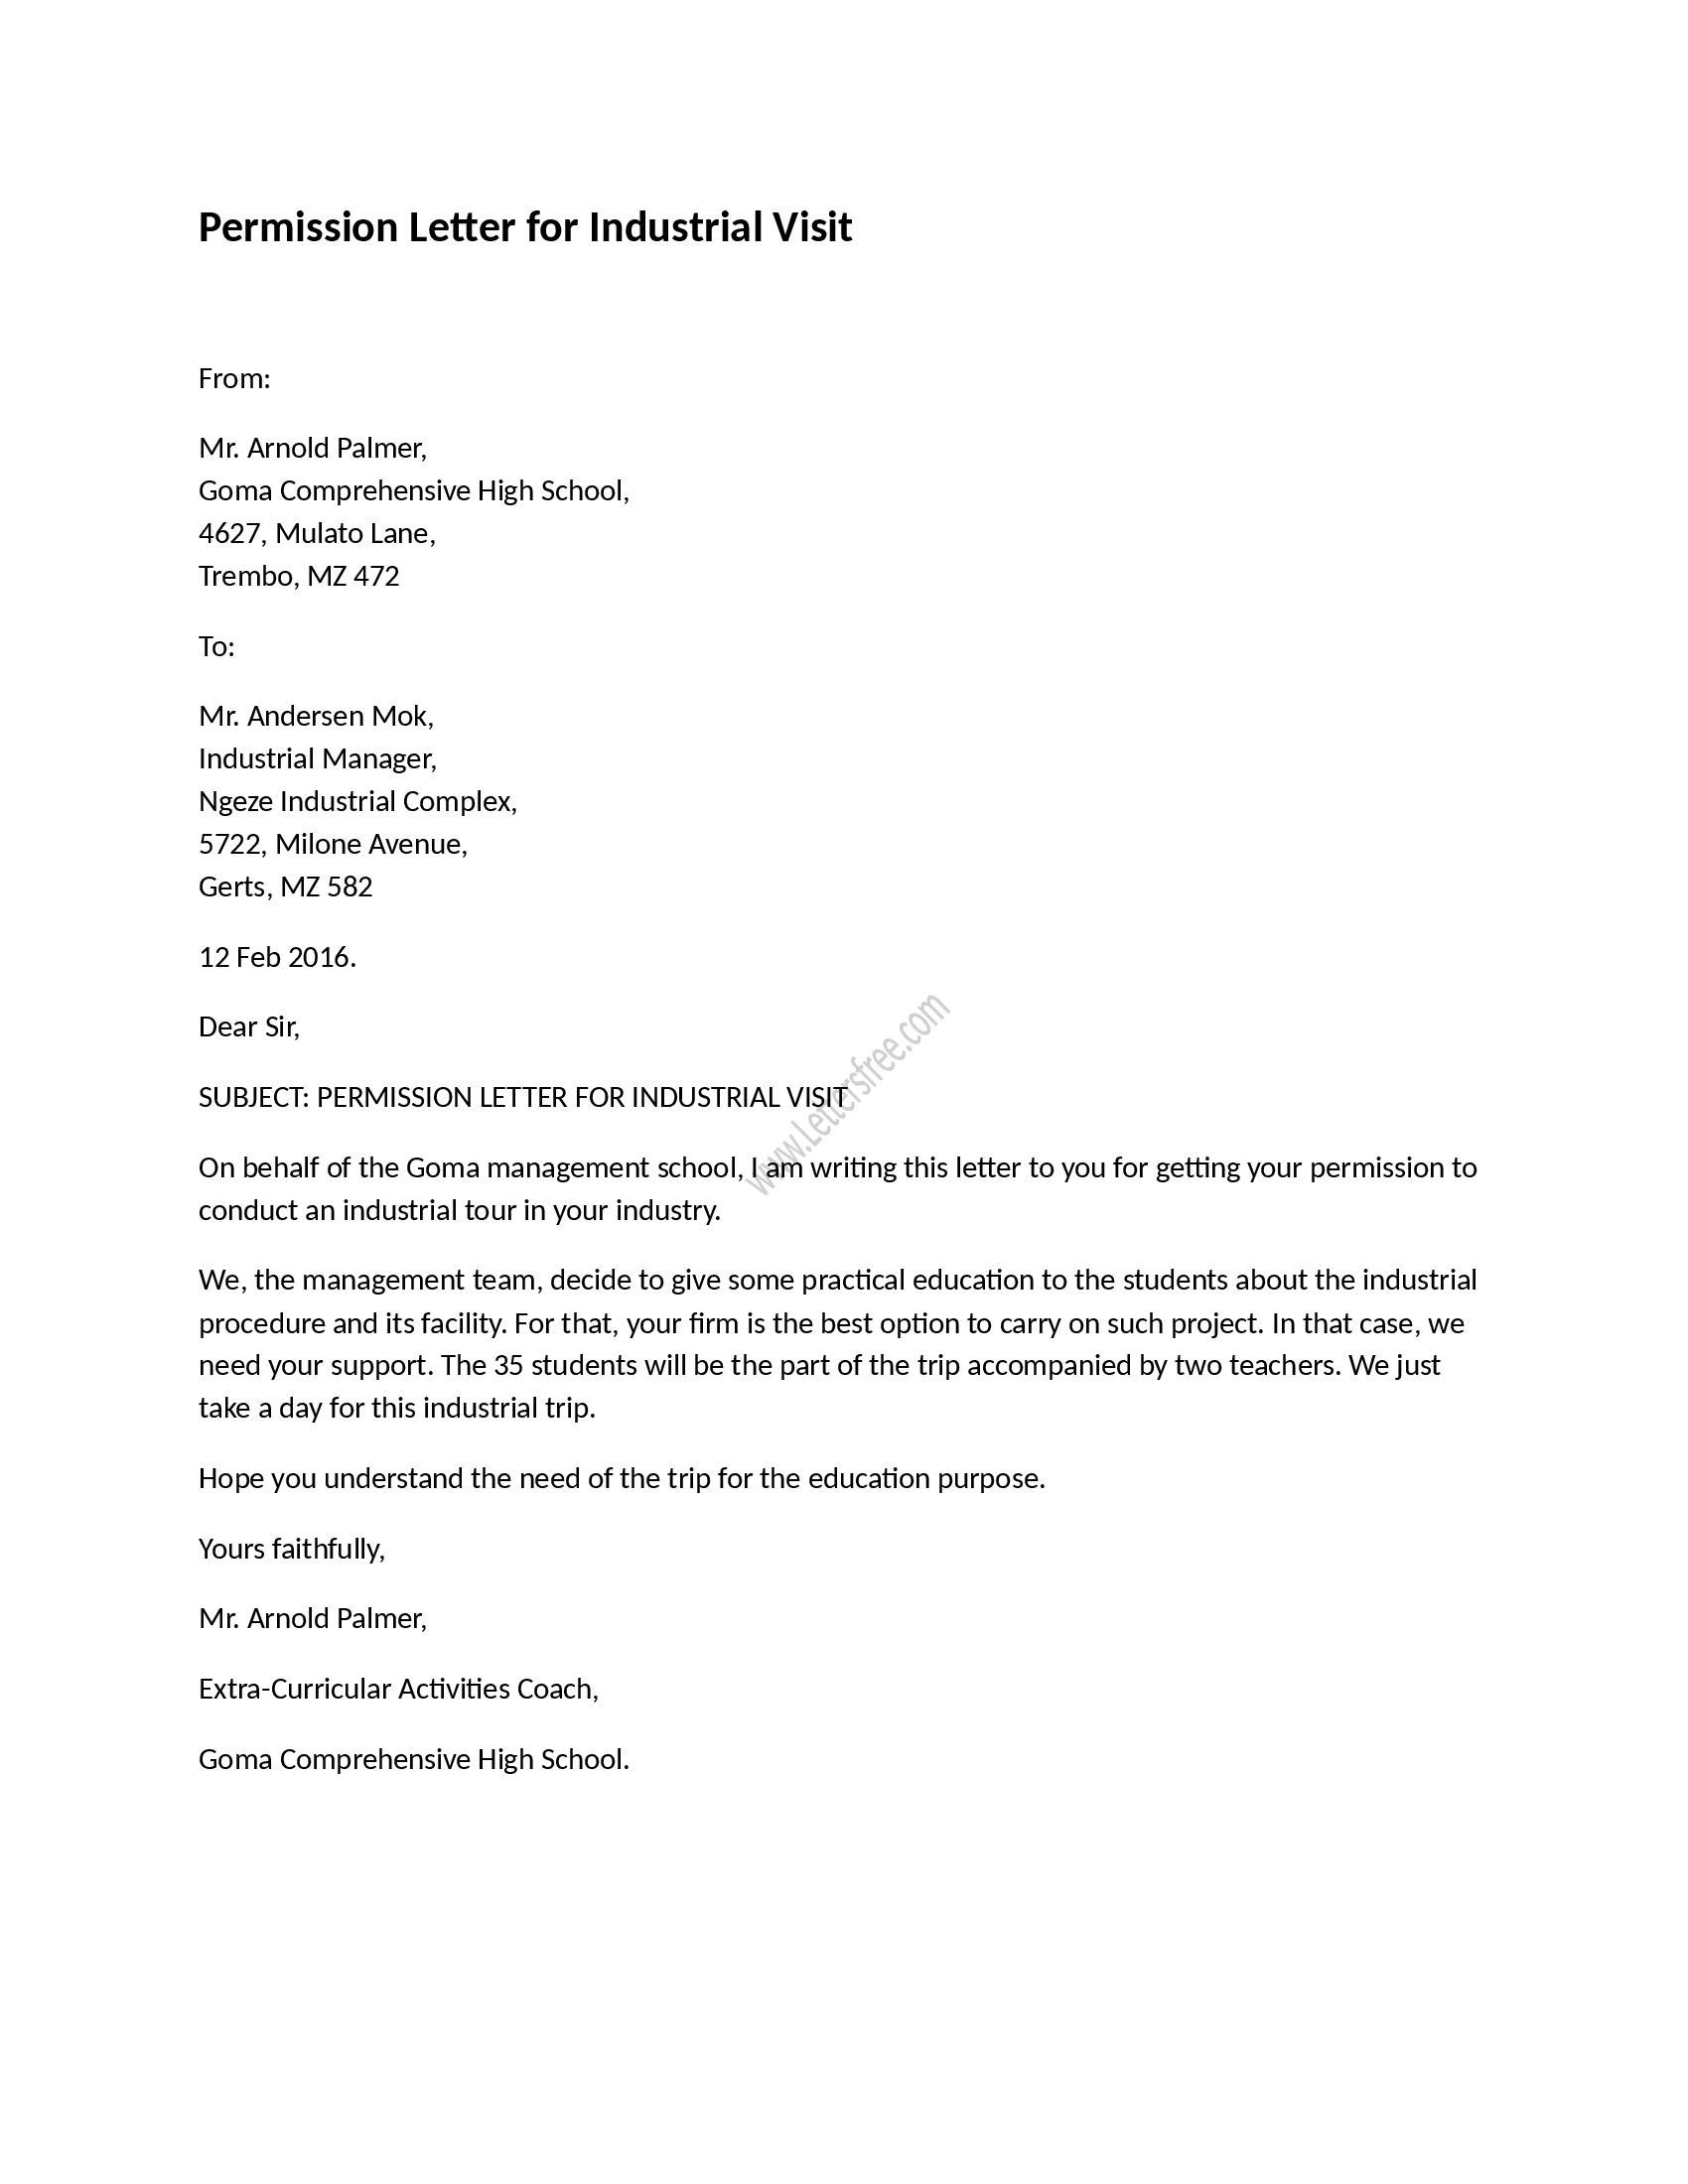 travel consent letter template Collection-Example of permission letter for industrial visit as its name says is written for seeking the permission of an industrial visit as a part of the 3-t